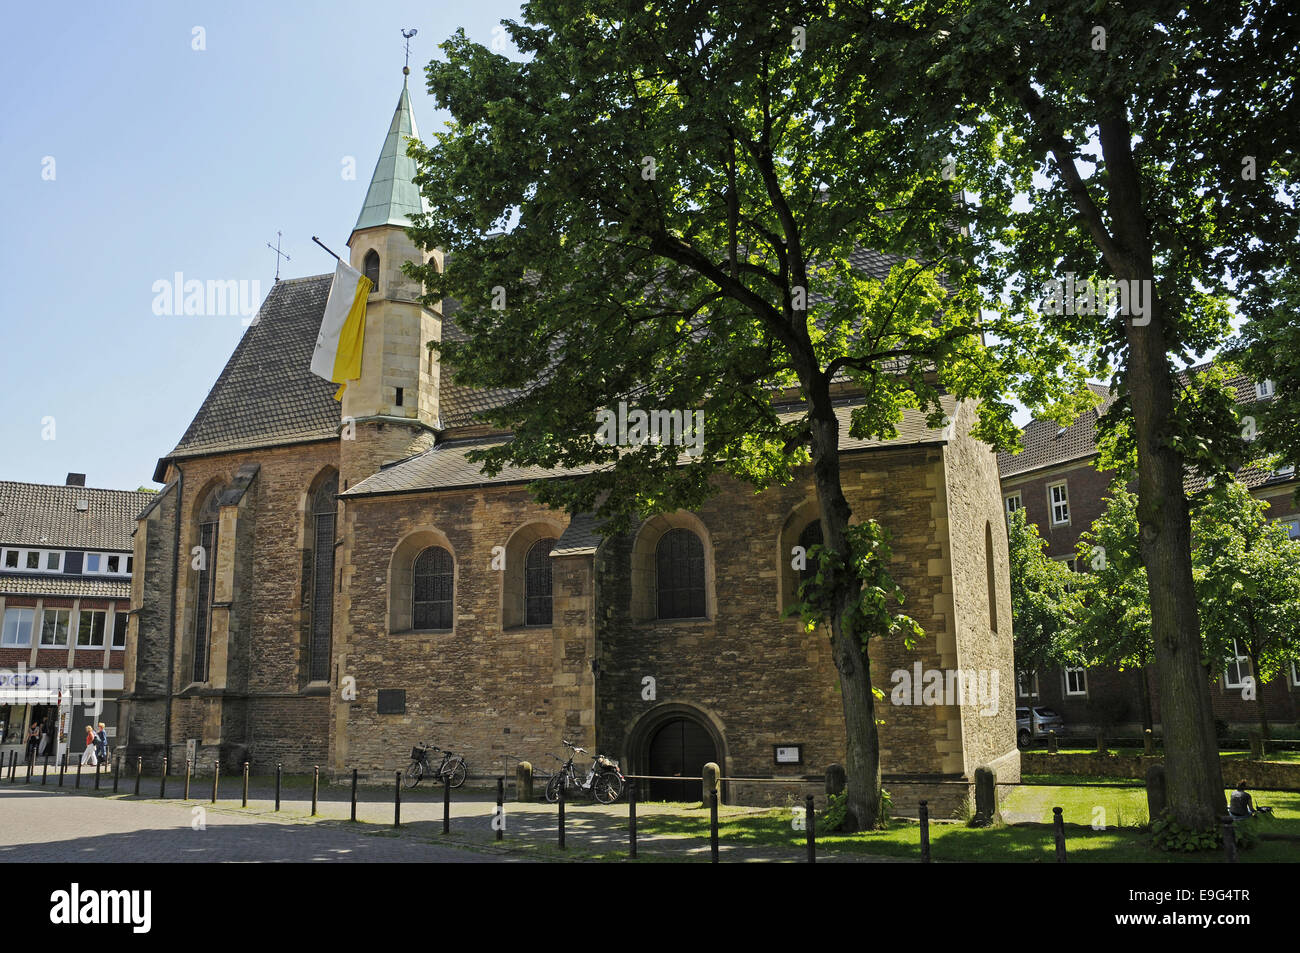 St Servatii Church, Muenster, Germany Stock Photo